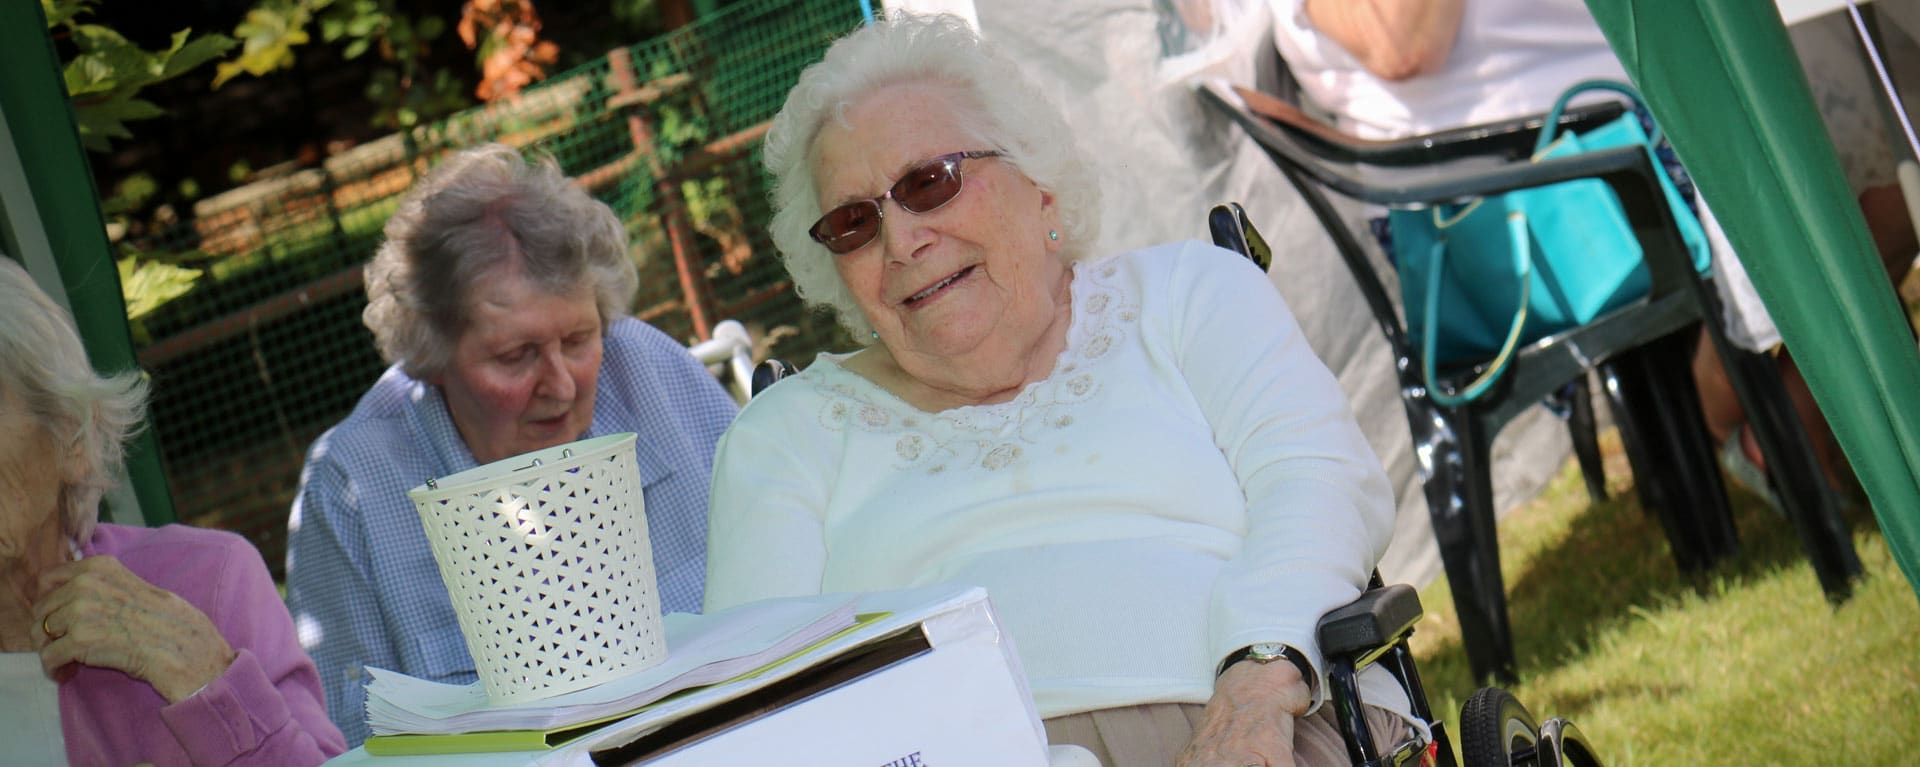 Laurel Care Home resident smiling in the garden